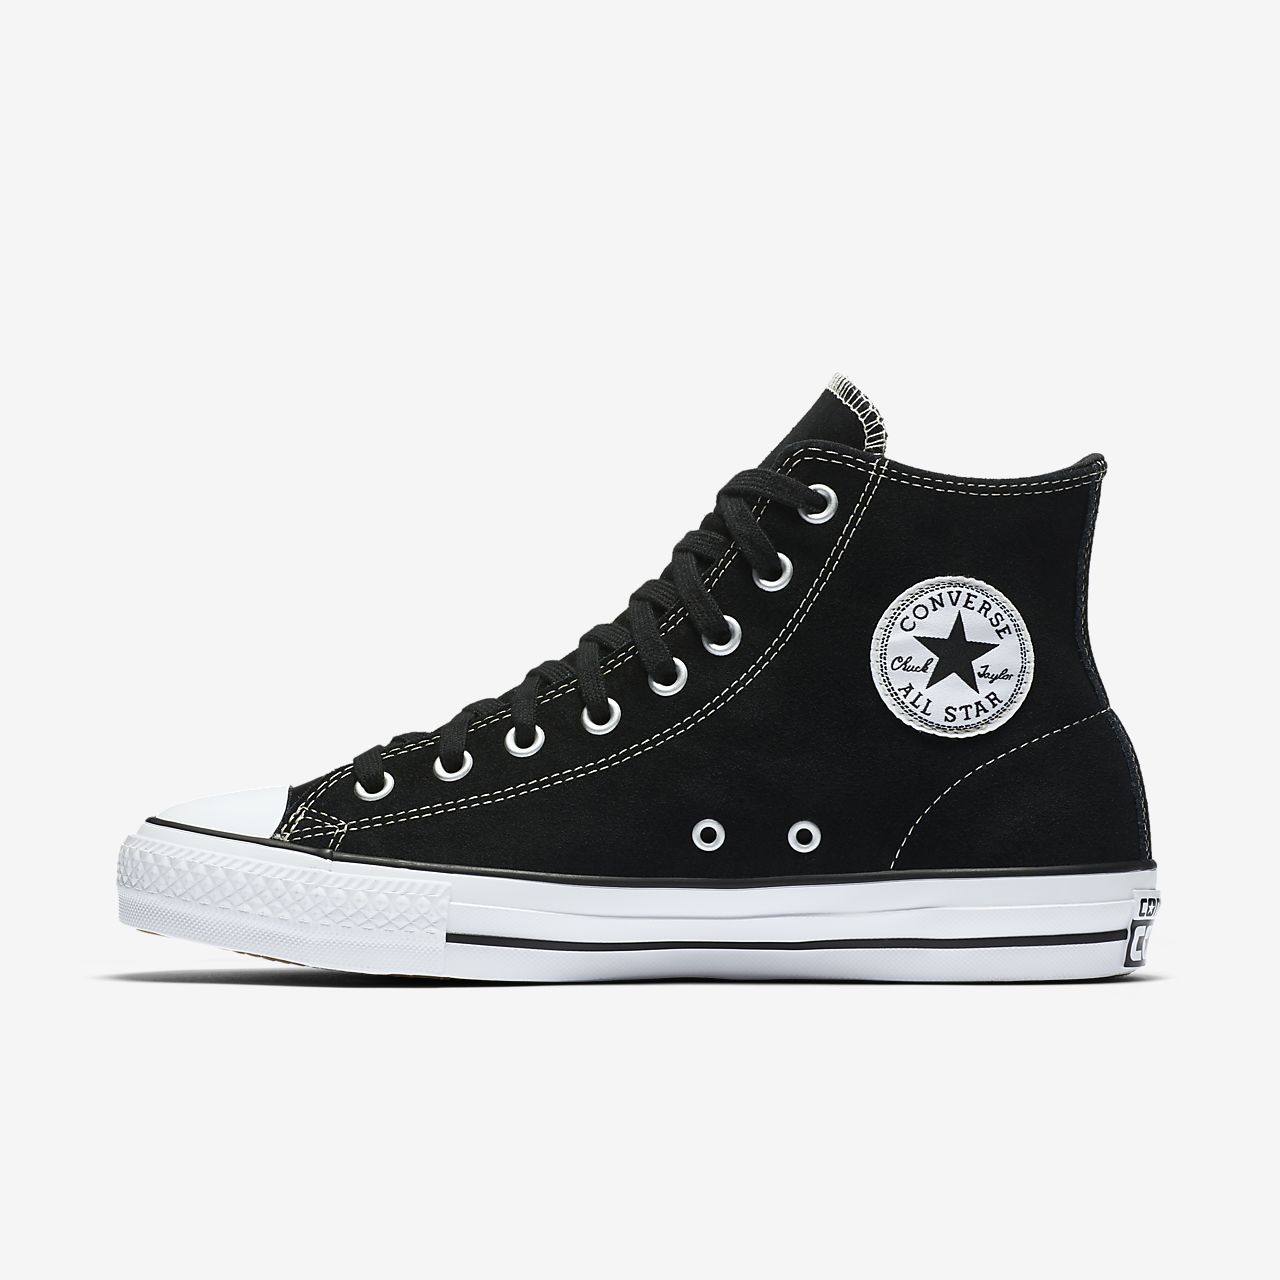 be74b7dc4850 ... authentic converse cons ctas pro suede high top mens skateboarding shoe  ab5cc ba397